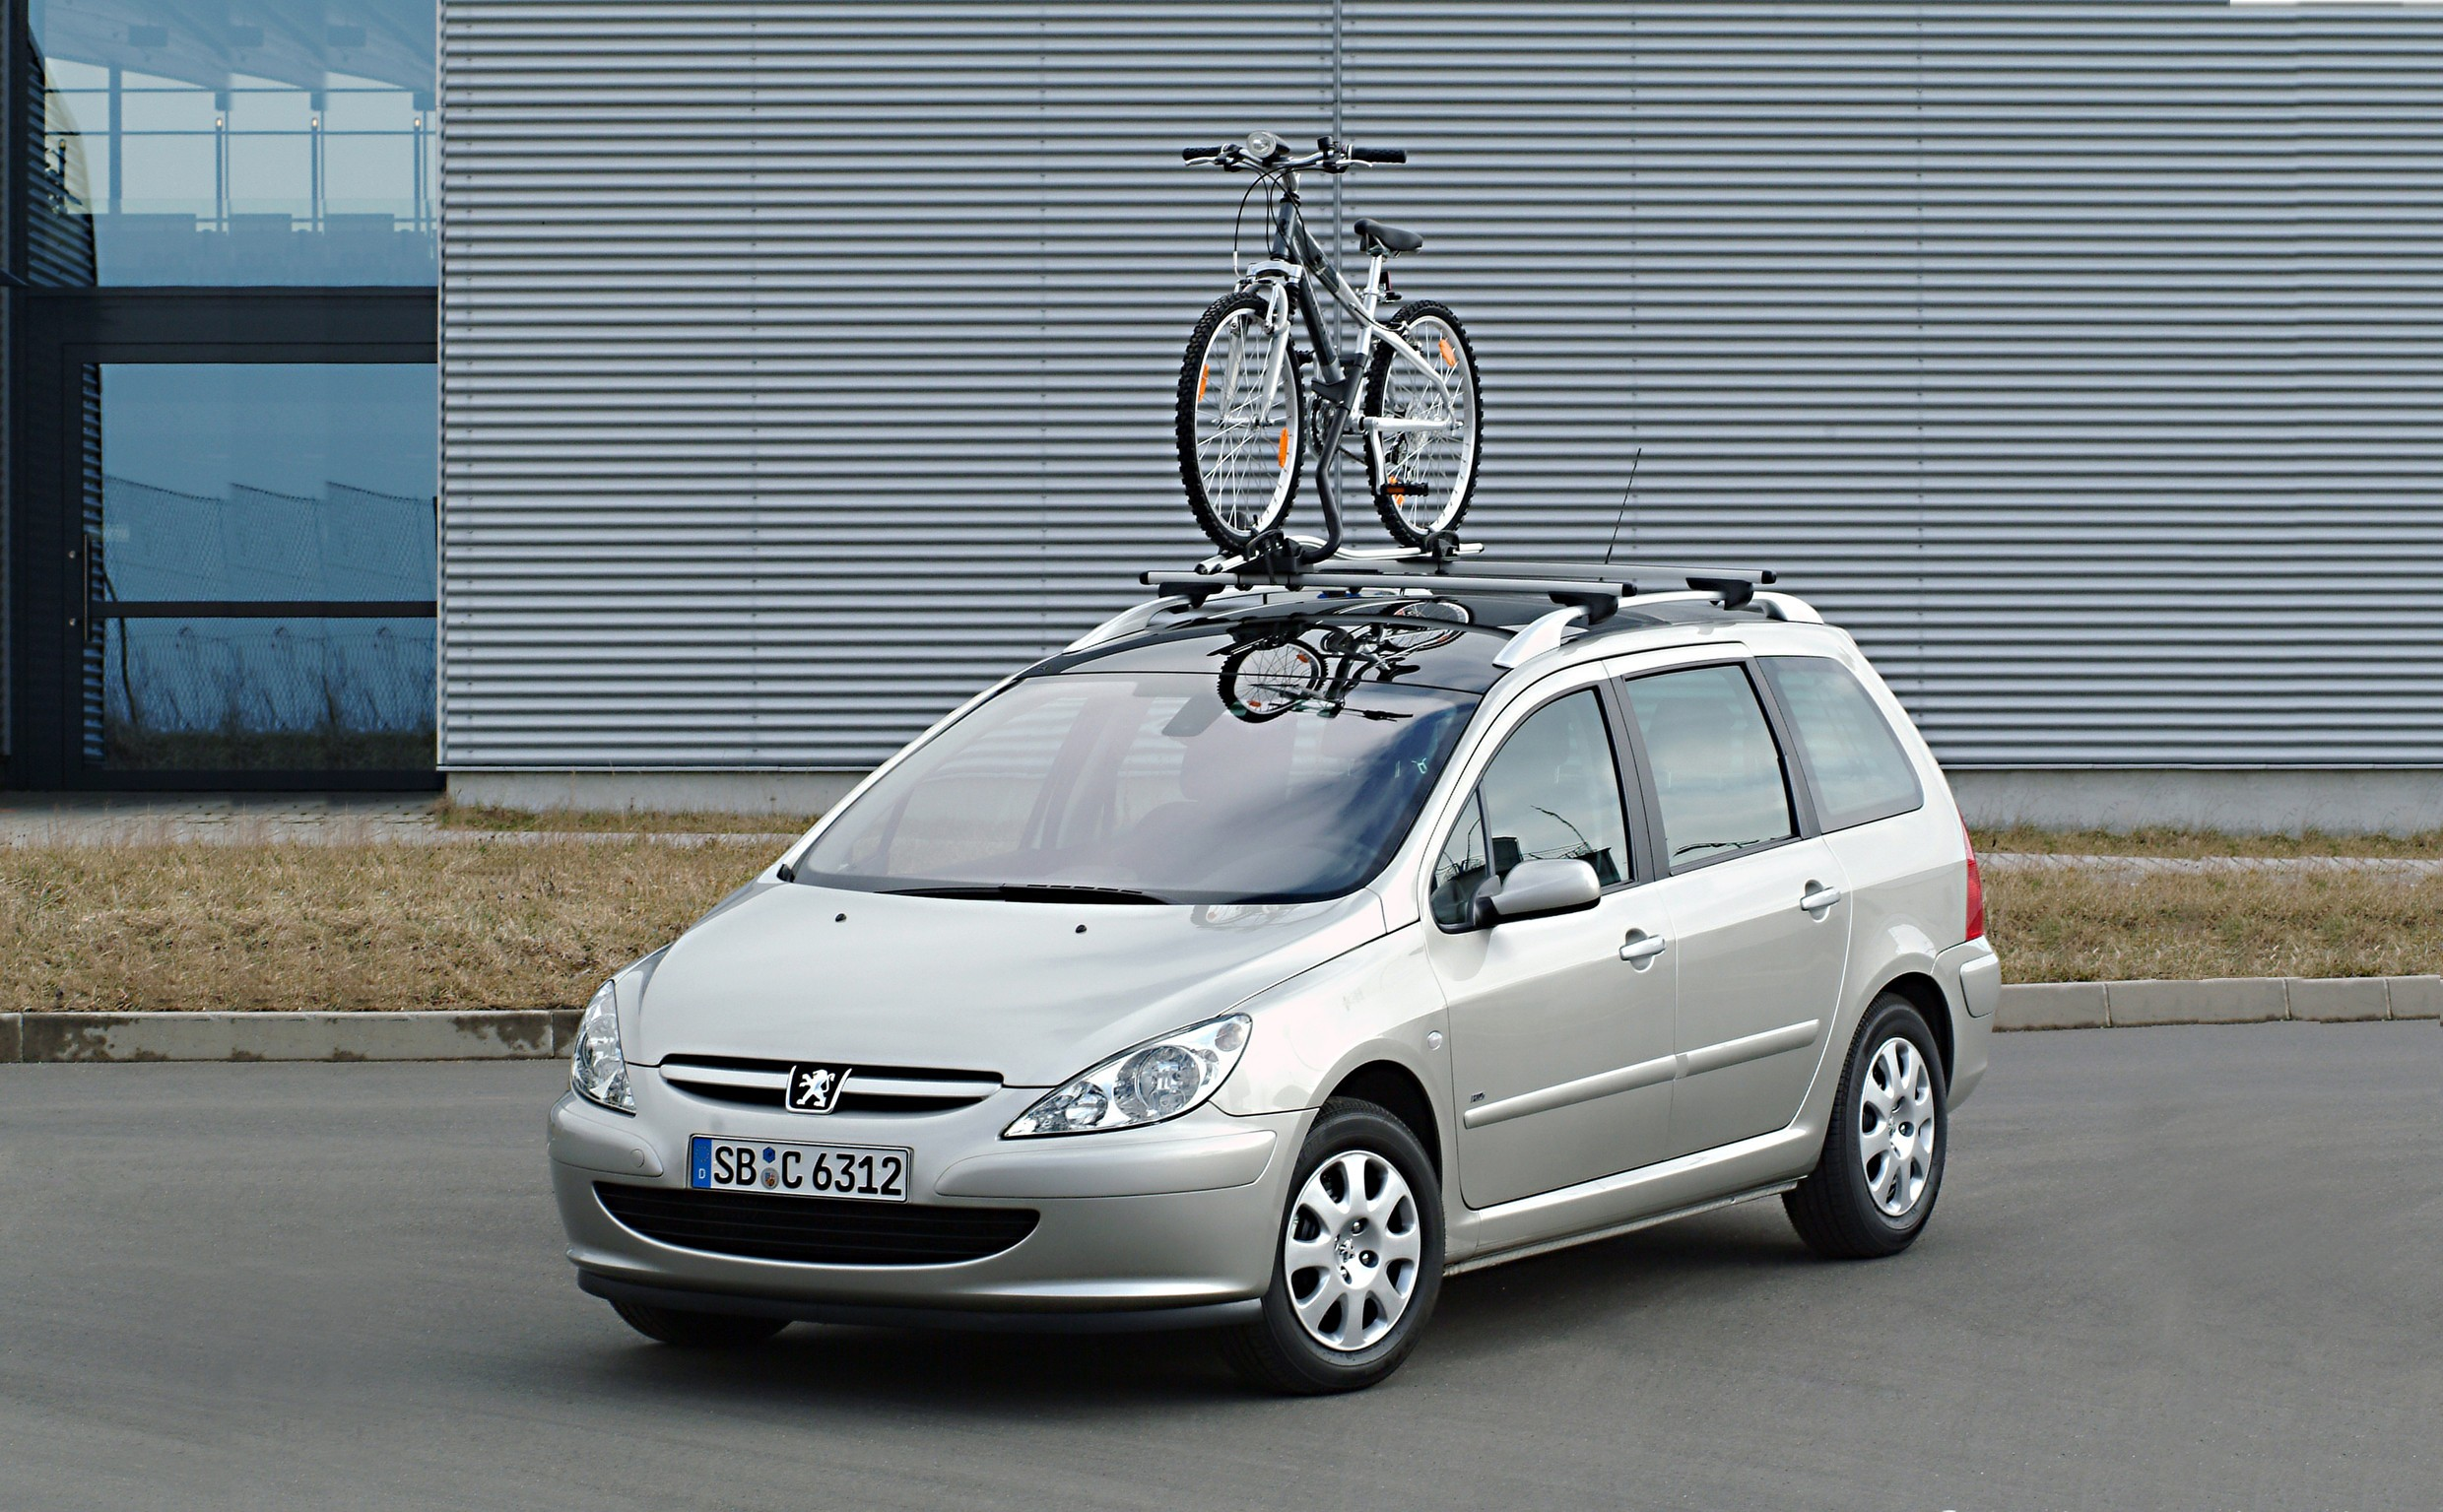 peugeot 307 sw specs 2002 2003 2004 2005 autoevolution. Black Bedroom Furniture Sets. Home Design Ideas